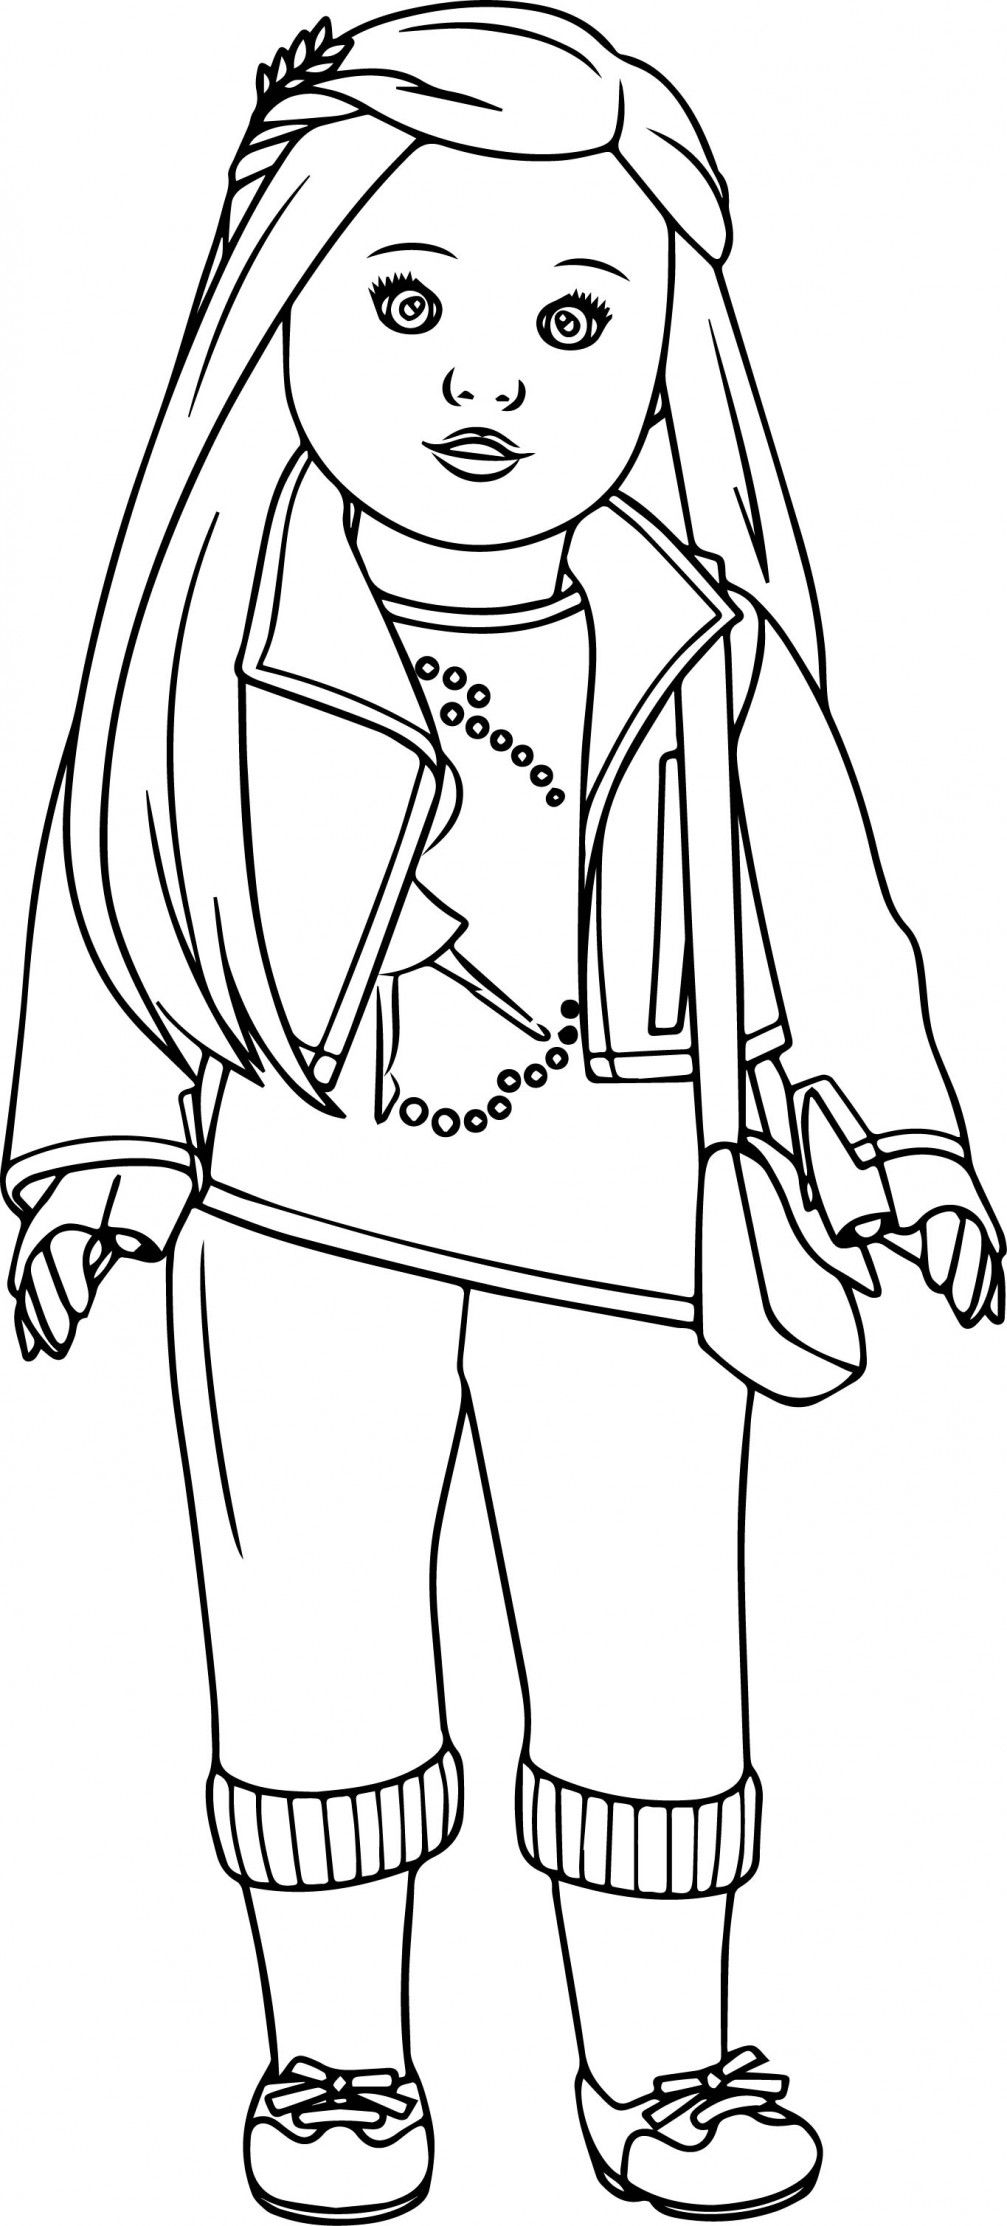 pictures of american girl dolls to color american girl coloring pages best coloring pages for kids girl of to color pictures american dolls